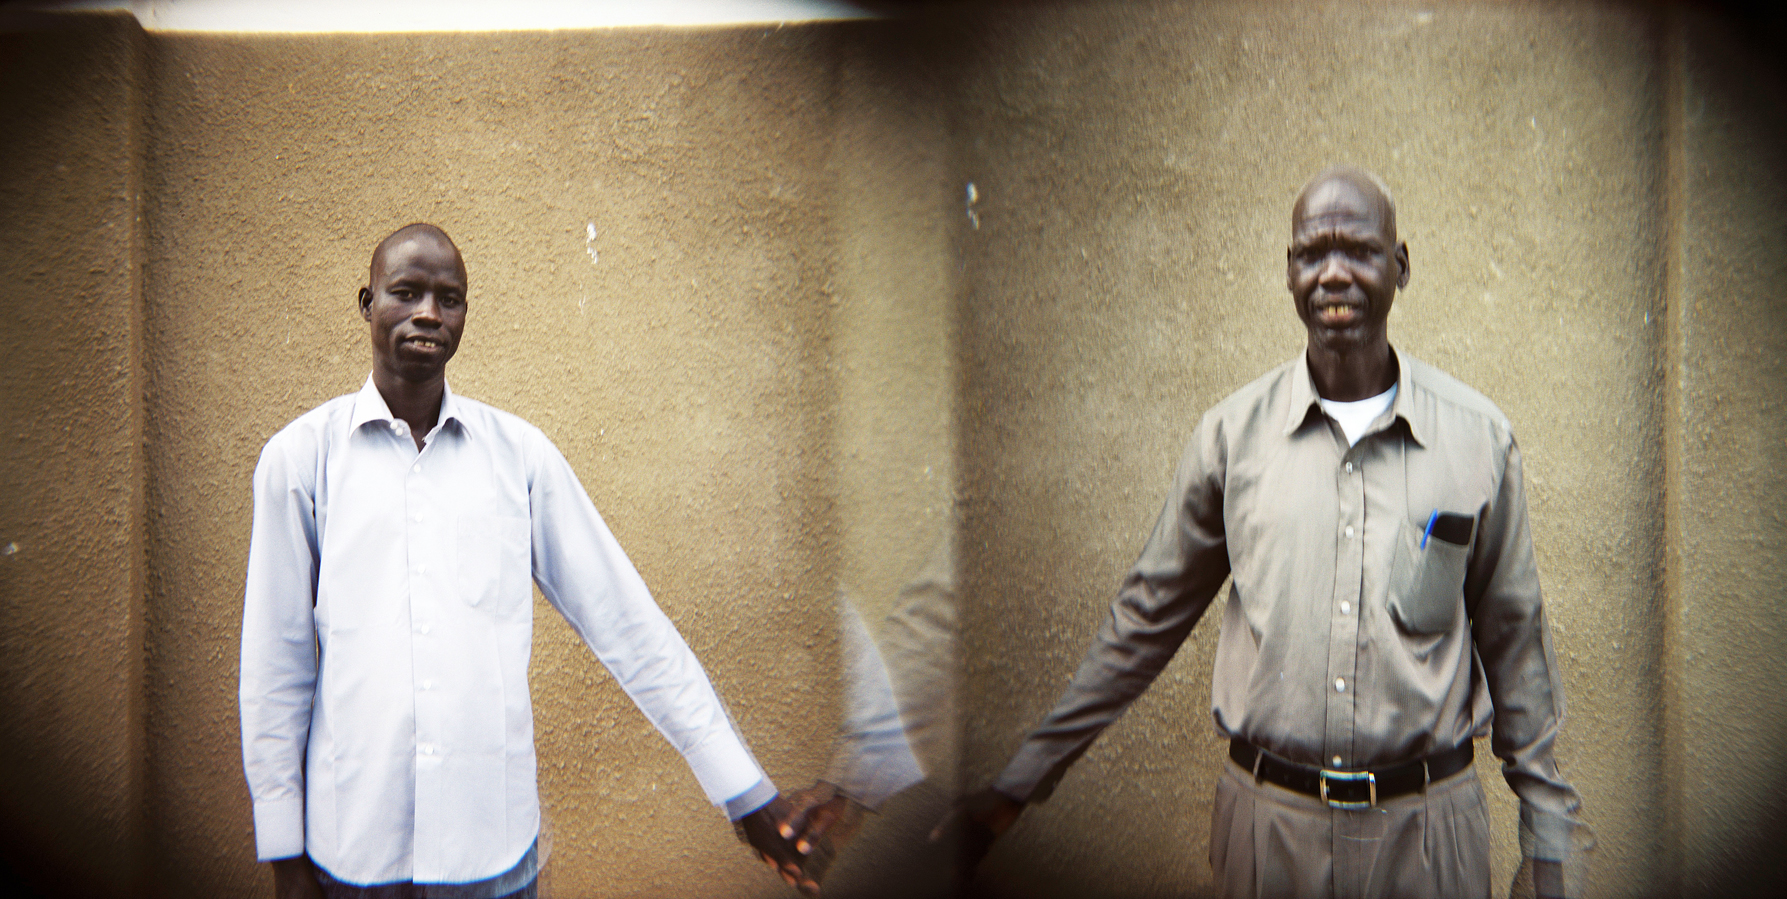 "(L) Peter Uliech Galdino, Evangelist from Eastern Equatoria:  ""I wish for all people of the Republic of South Sudan to forgive each other, live in peace and forget the past. We must focus on developing the nation and celebrate all of our diversity.{quote}(R) William Magok Khan, Pastor from Unity State: {quote}From civil war, to tribalism which opened South Sudan to war again is not good for the South Sudanese people. We need to talk to the people about peace and tell them to stop the war. {quote}"